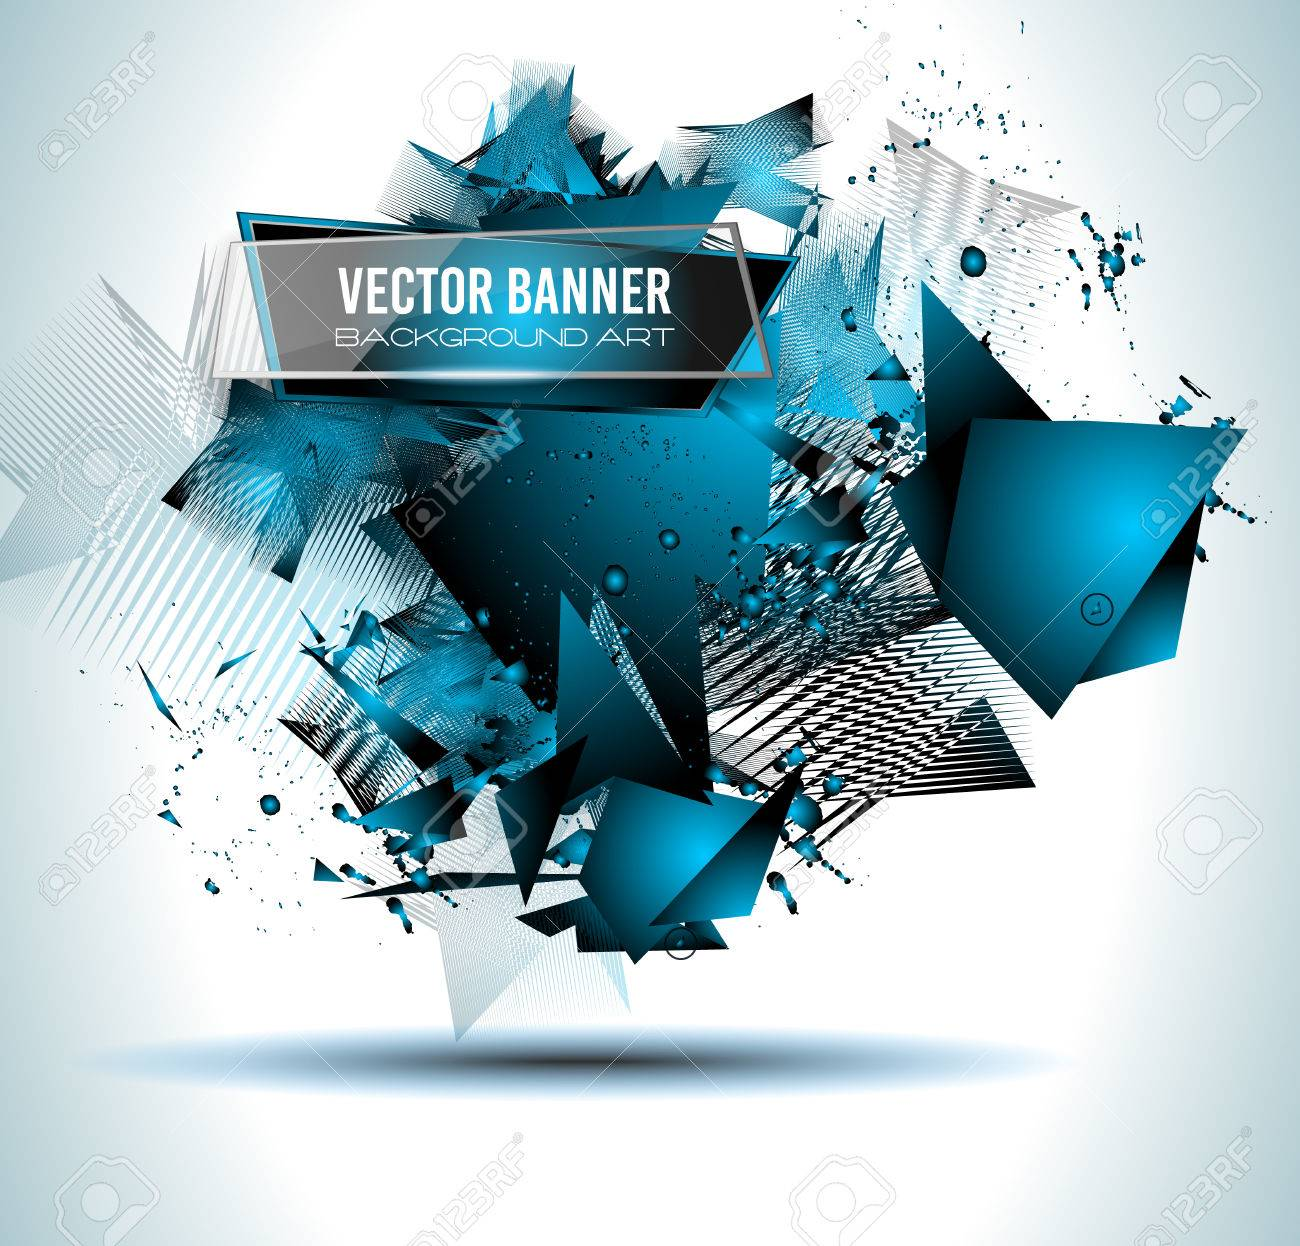 Abstract Background With Shapes Explosion For Cover Flyers Template